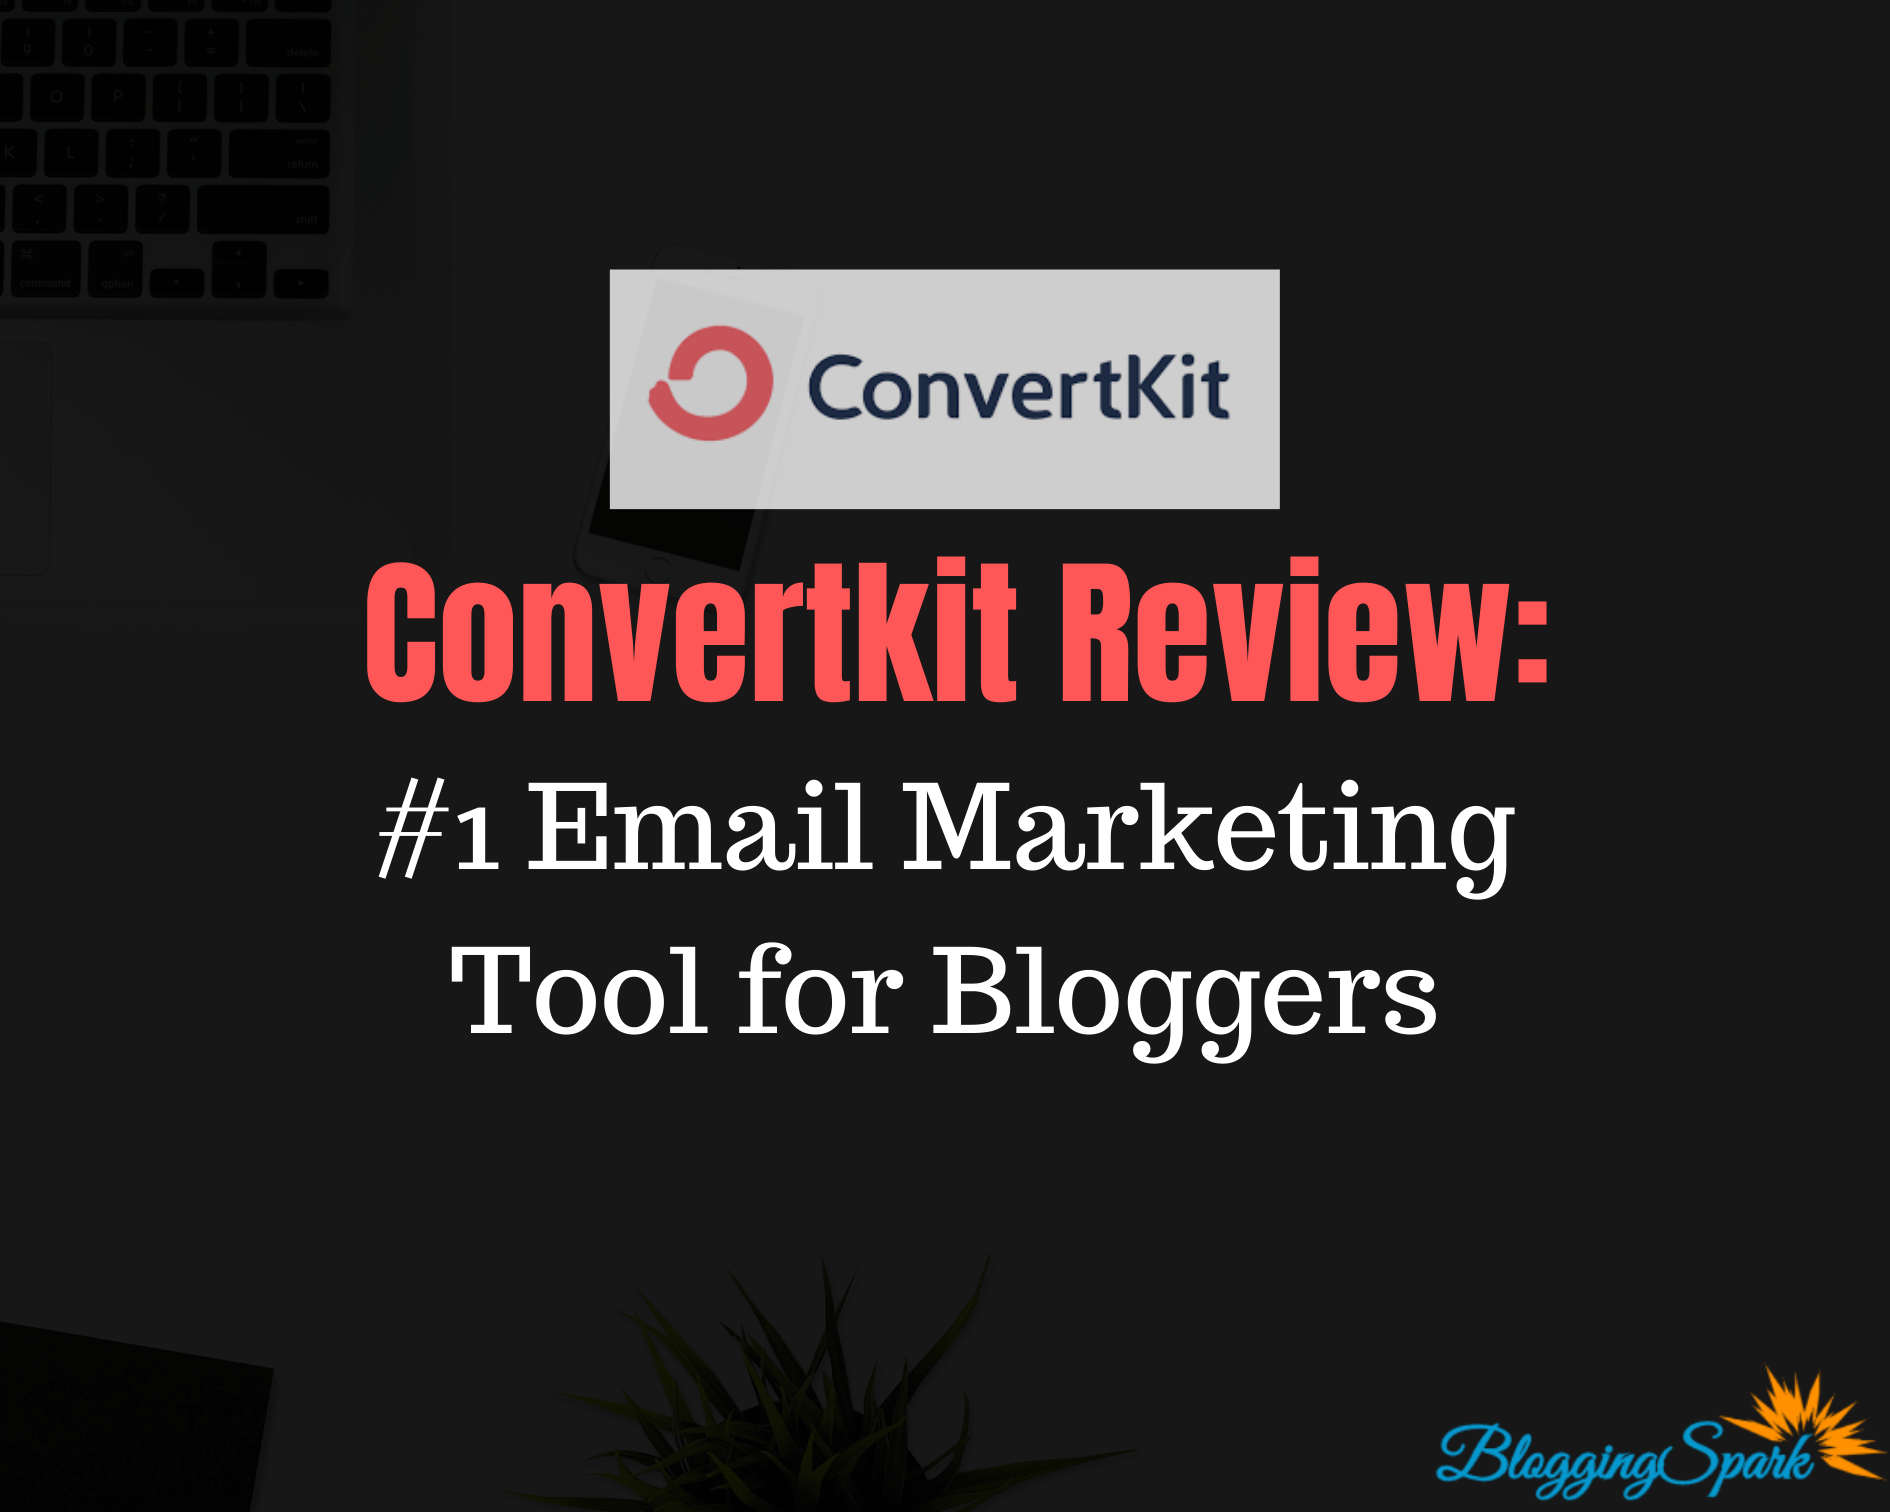 Convertkit Review: #1 Email Marketing Tool for Bloggers